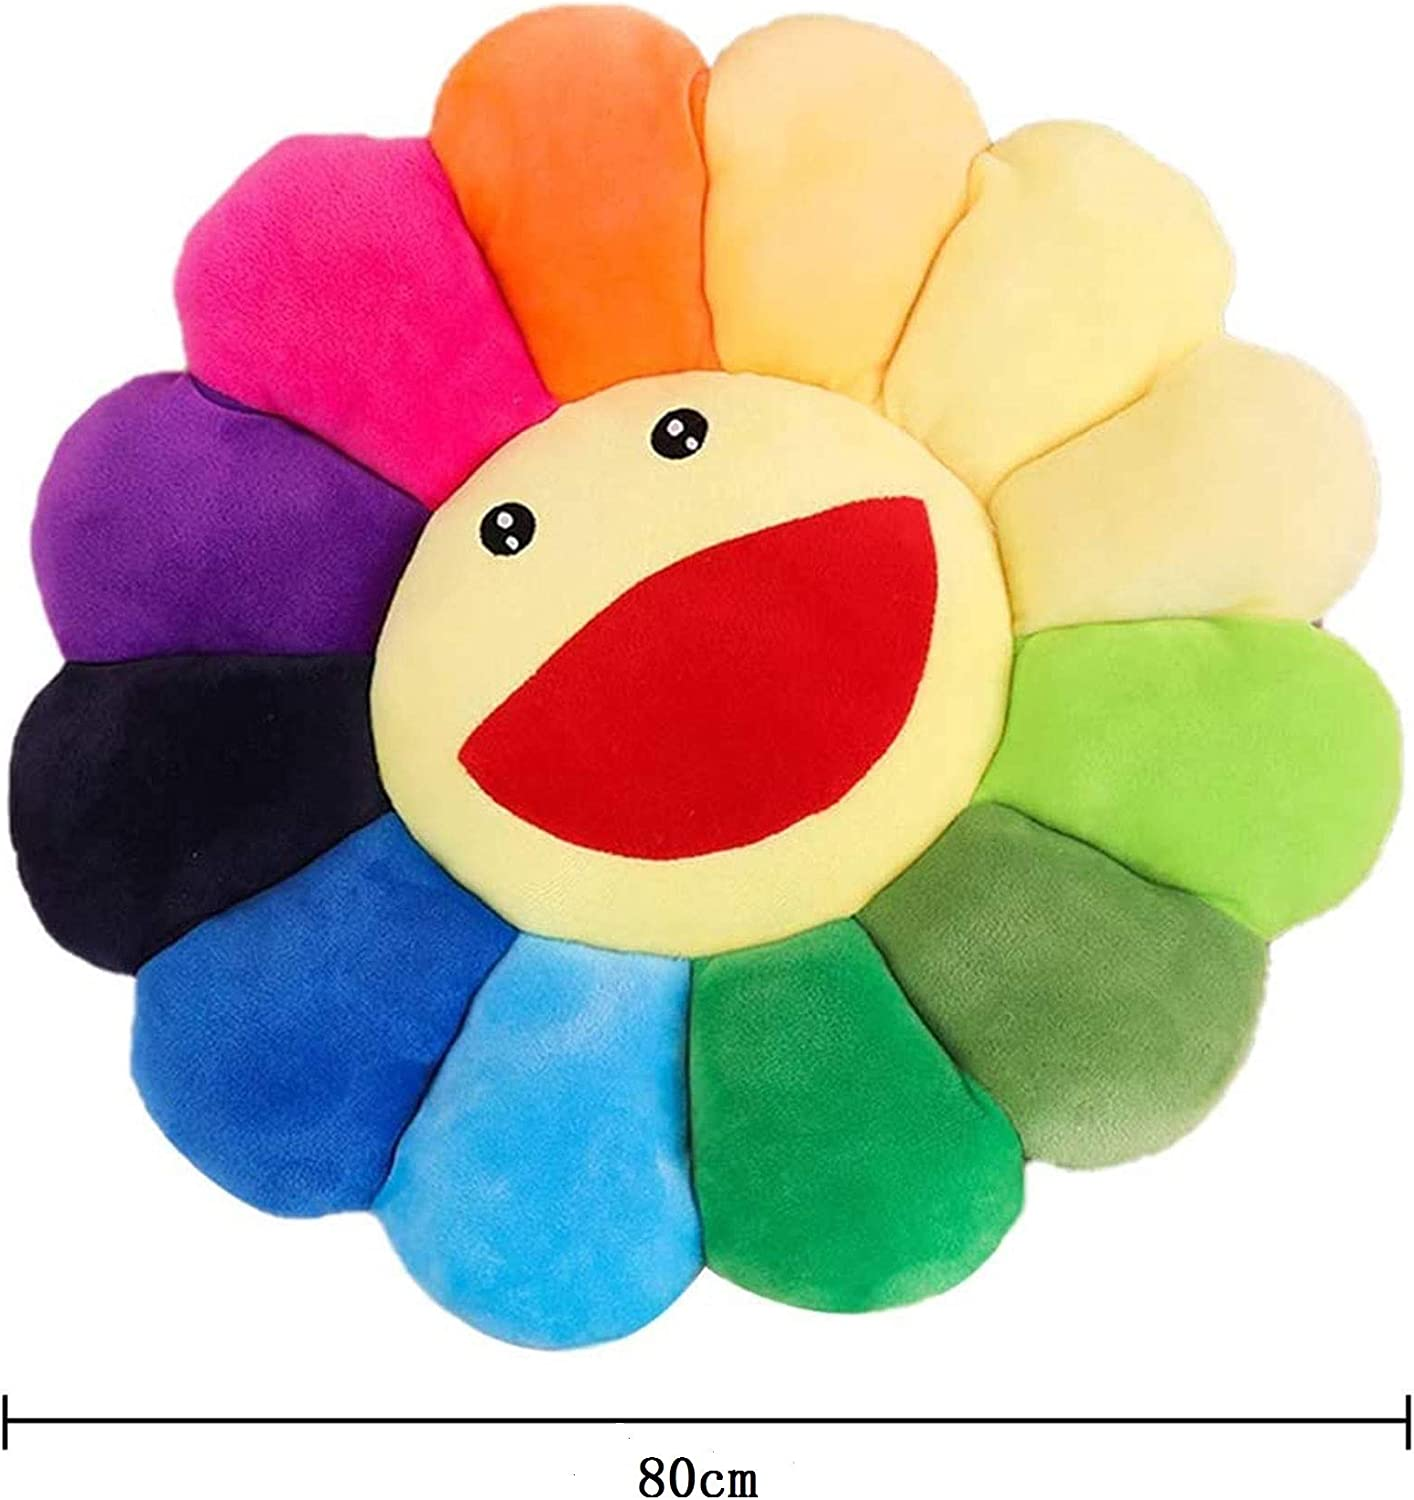 Sunflower Pillow Sofa Chairs Floor Pillow for Kids Reading Nook Watching TV Bed Room Decoration SYSI 17 Flower Plush Pillow Smile Flower Shaped Seating Cushion Rainbow